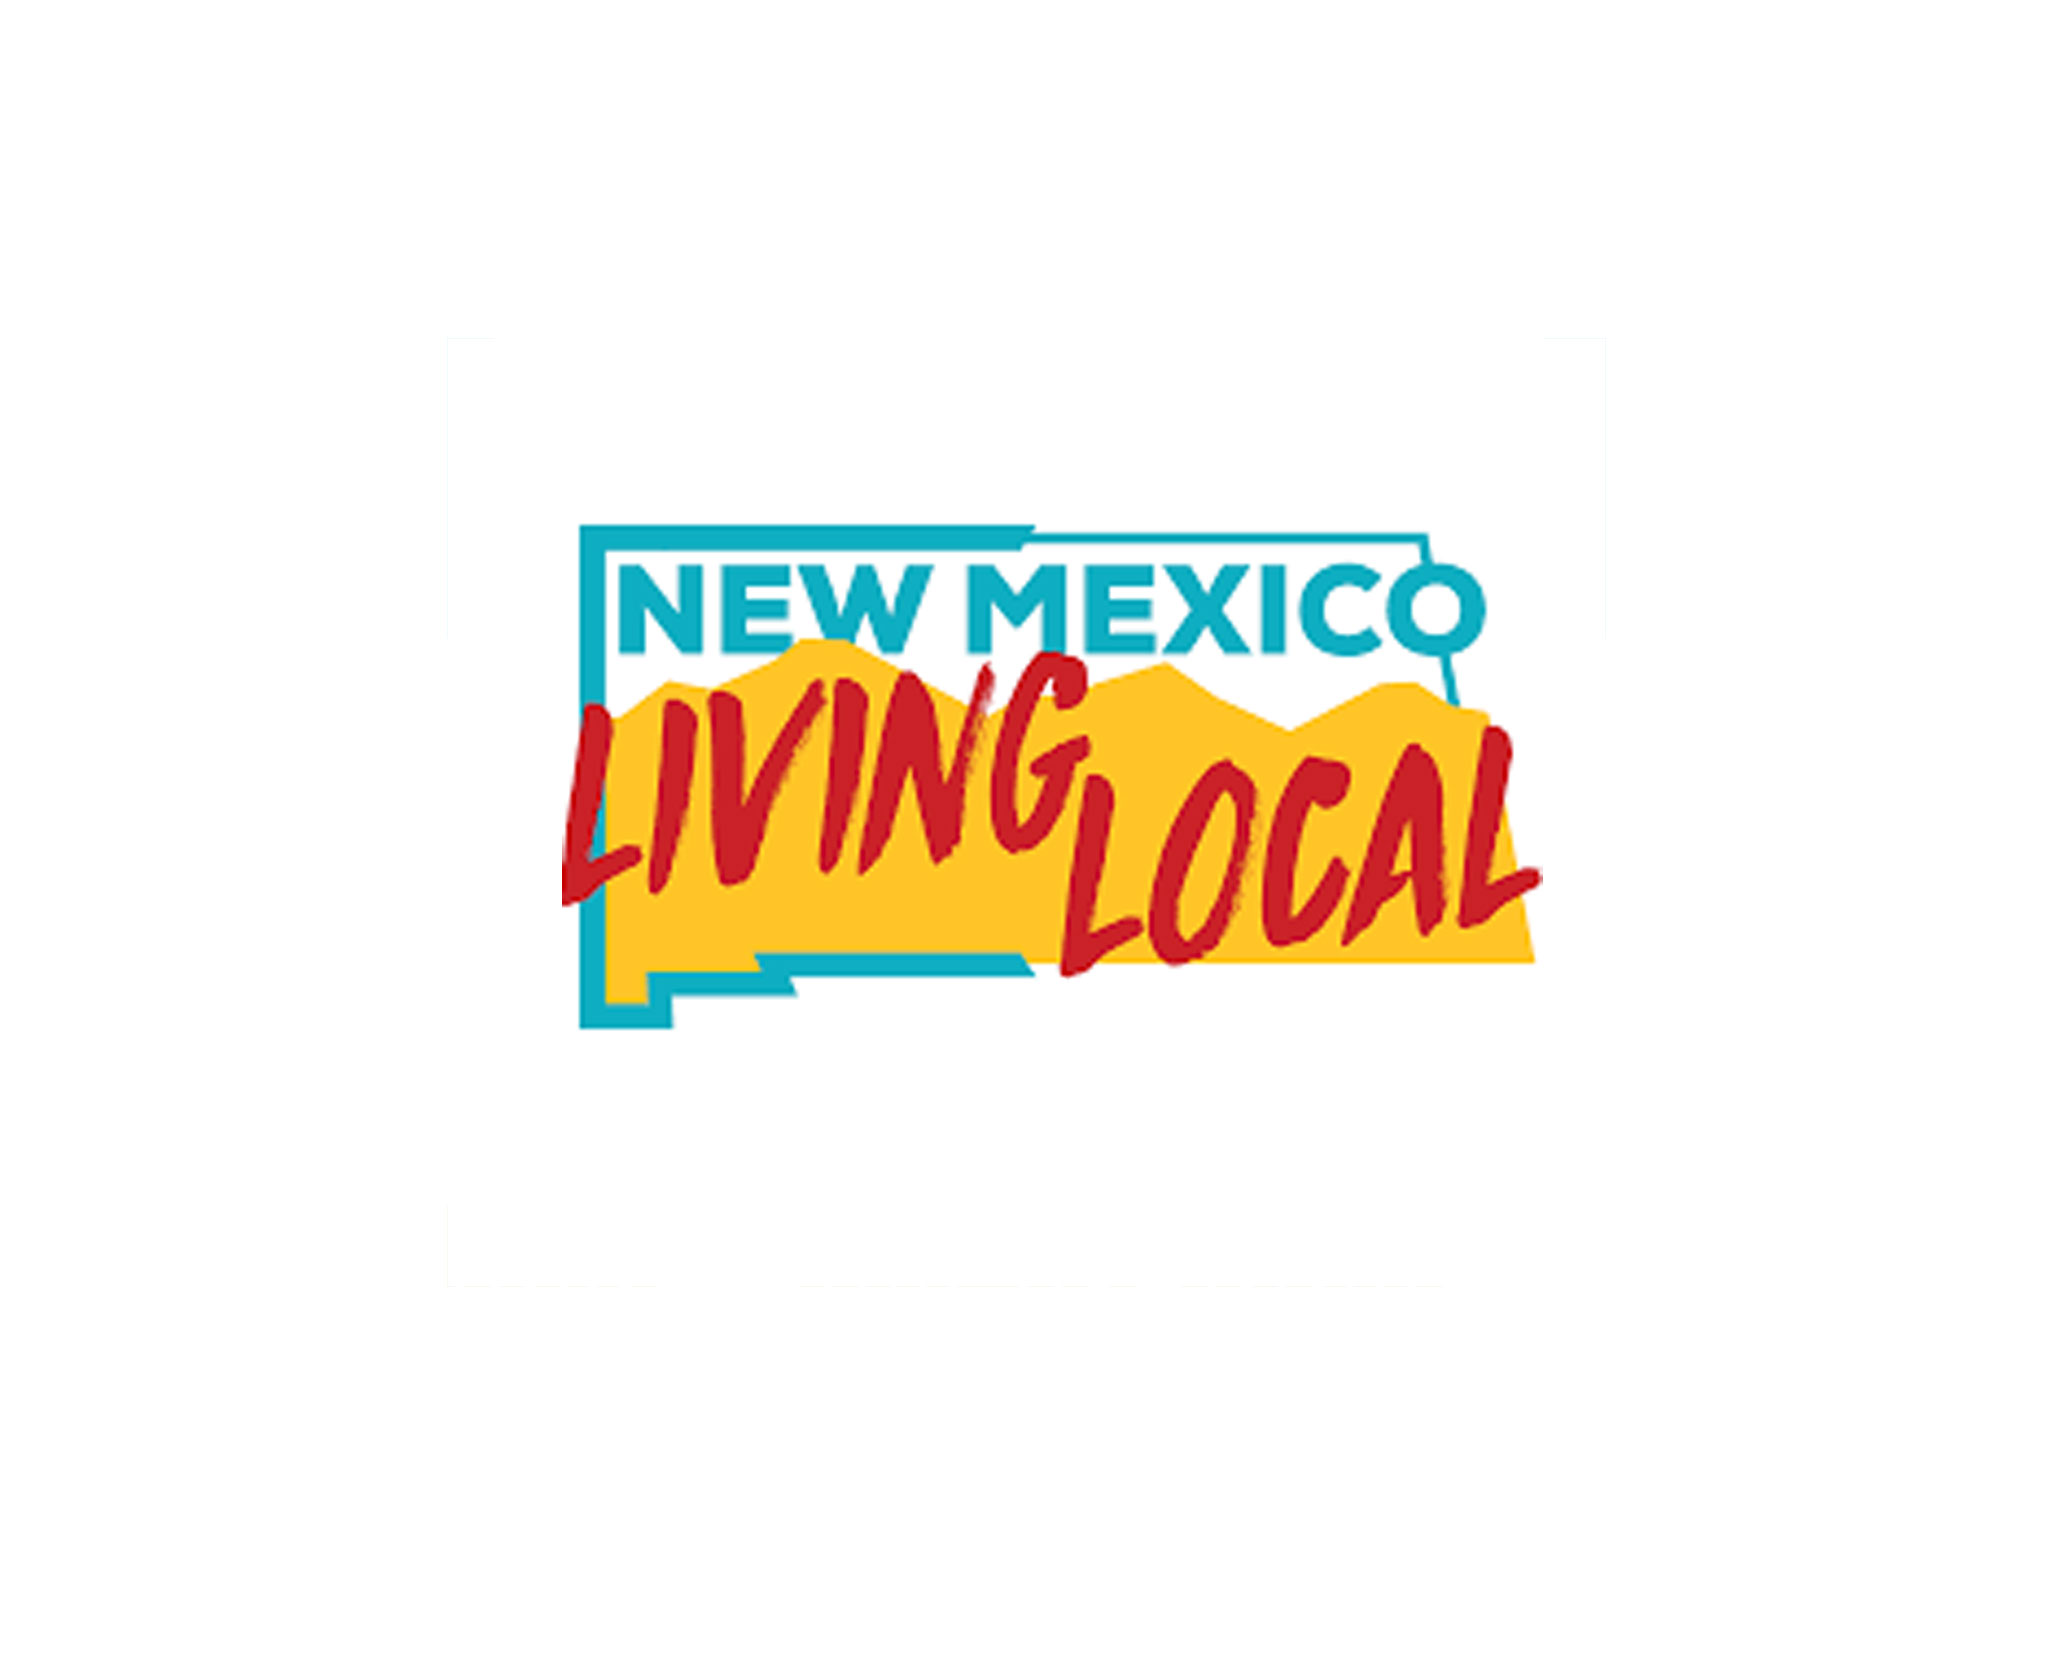 NM Living features Good Neighbor Holly Slade